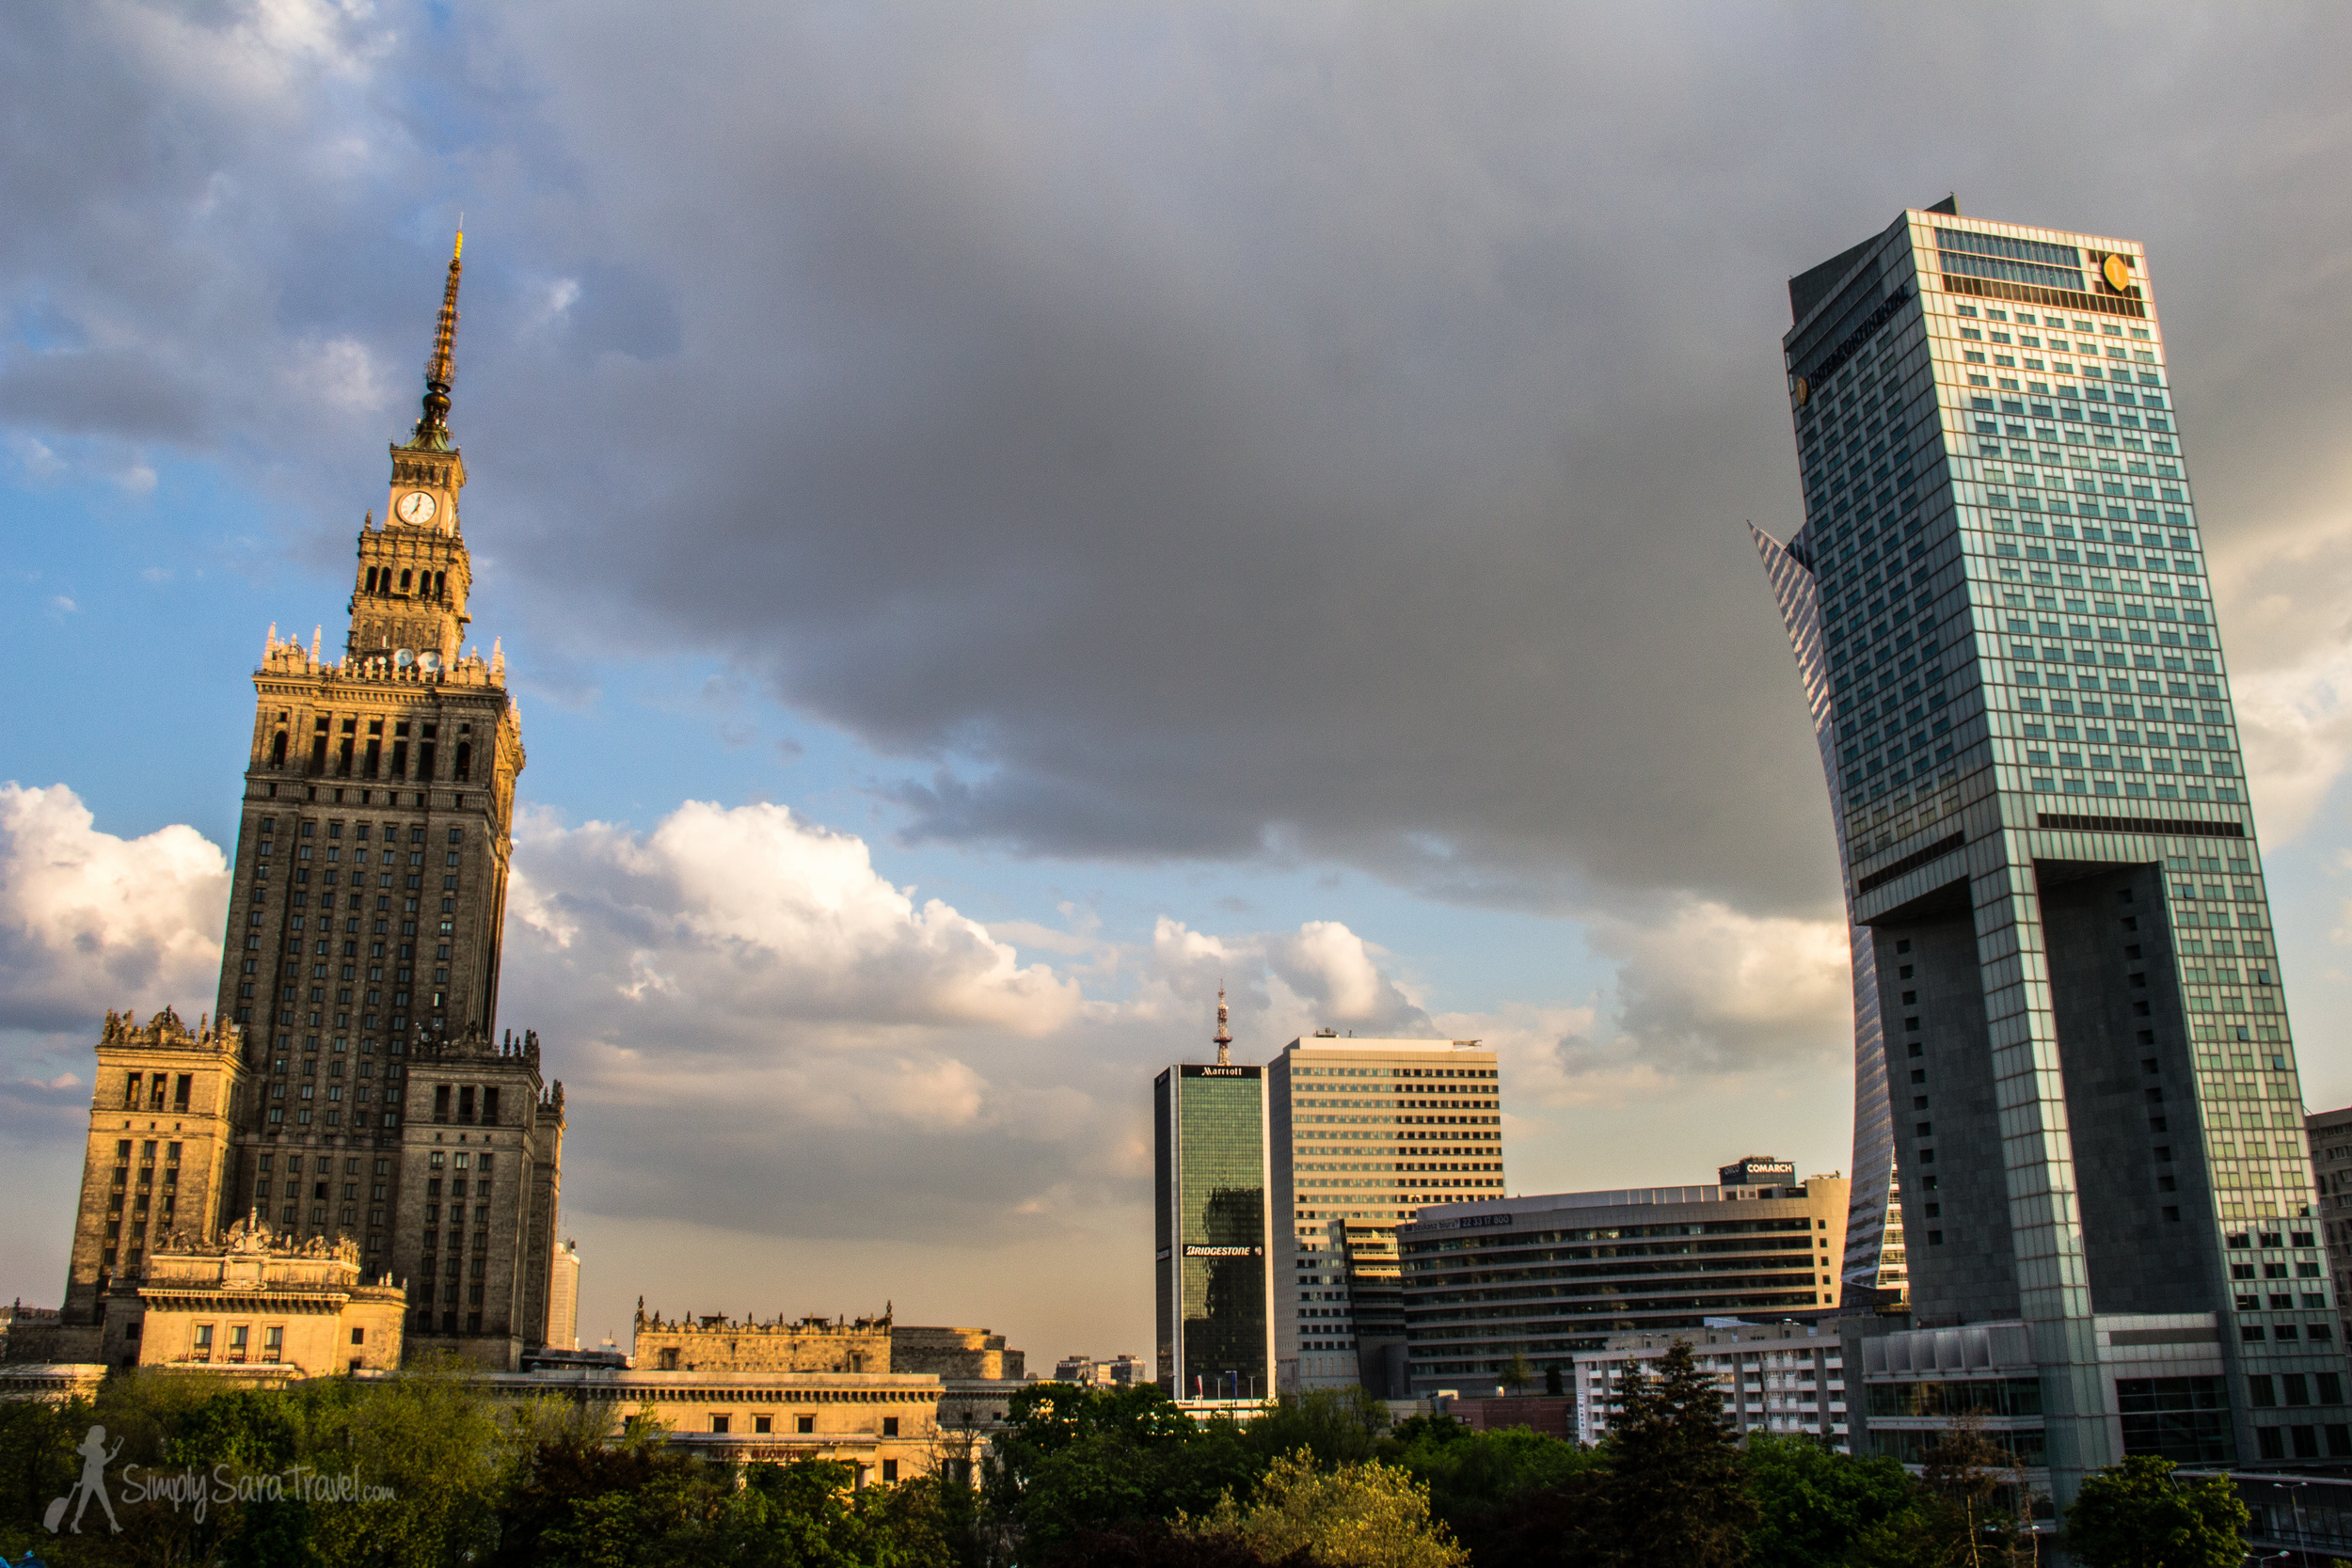 The view from our Warsaw apartment balcony!